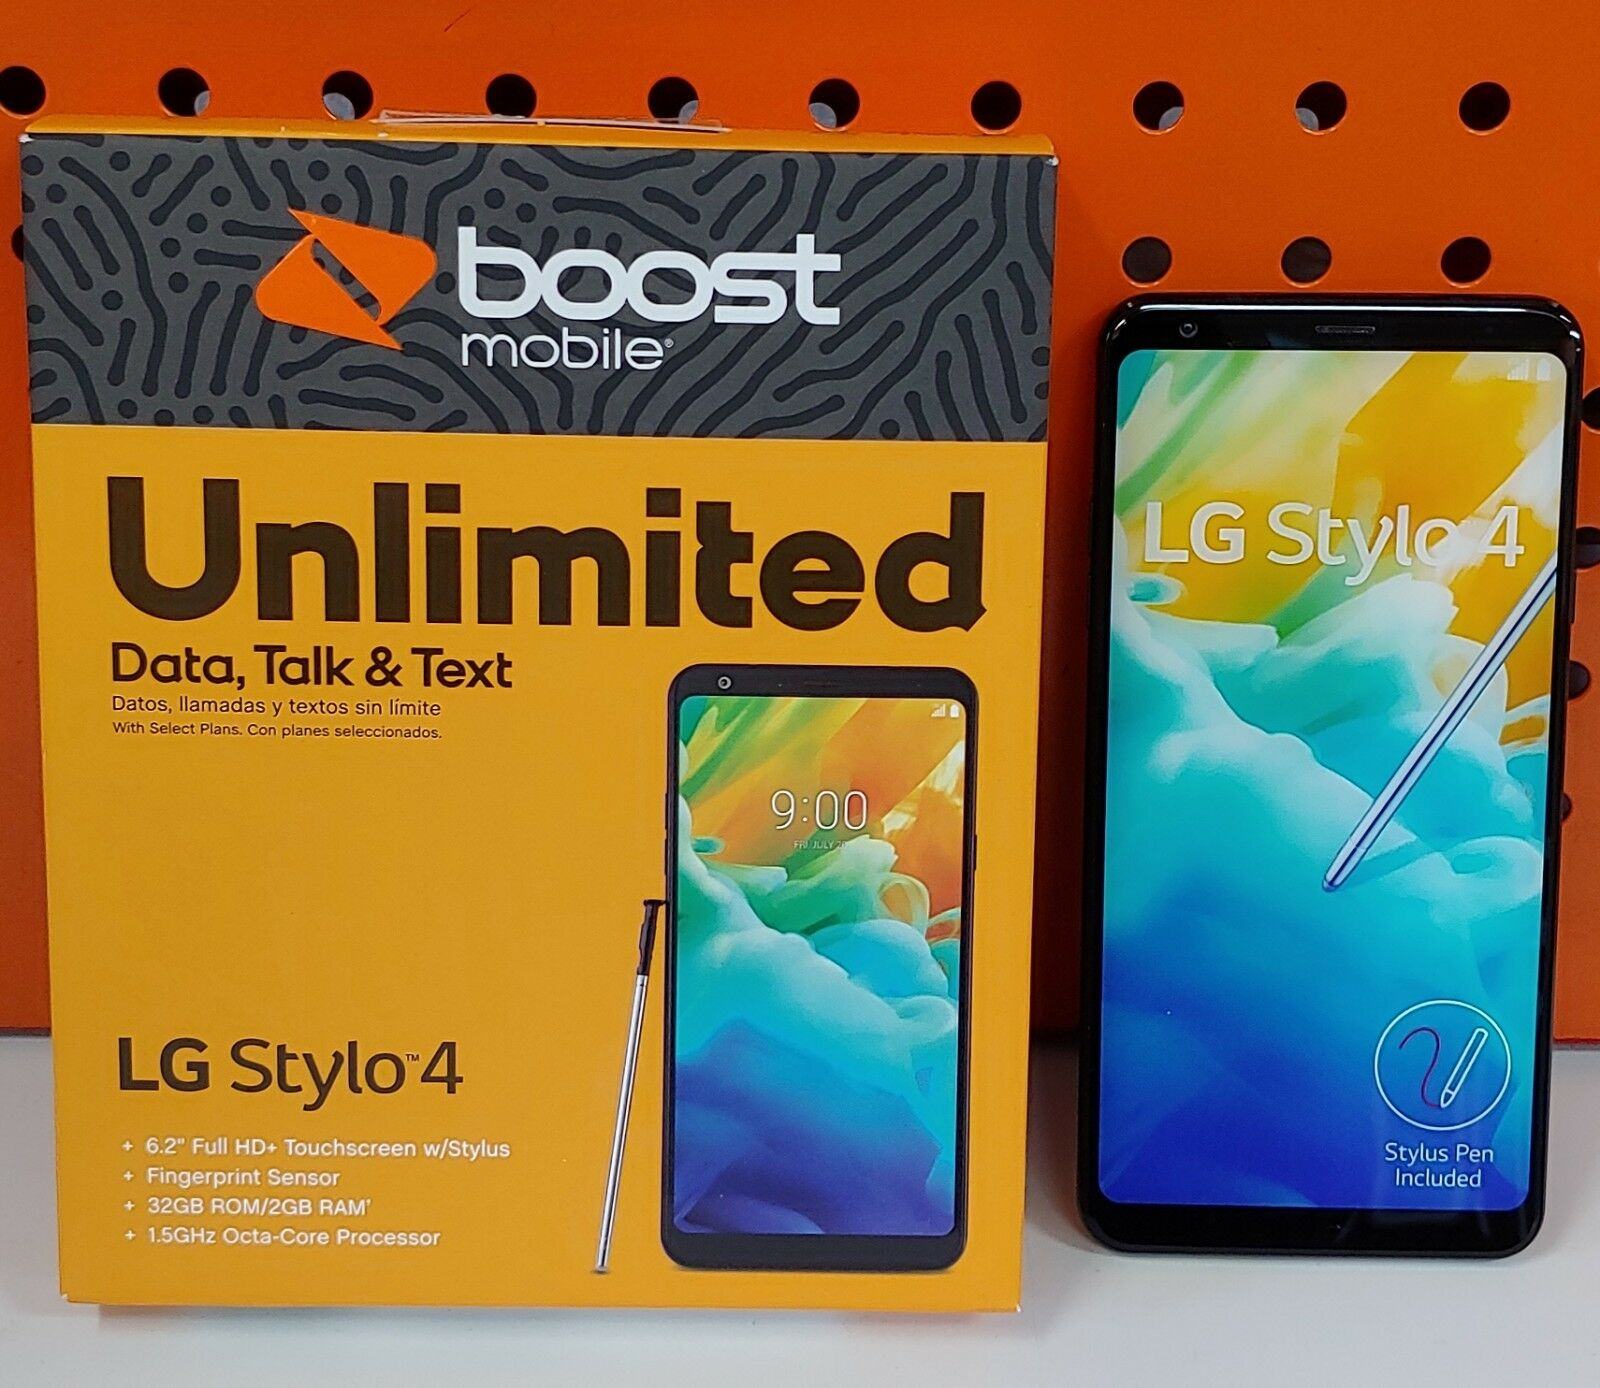 LG - Stylo 4 with 32GB Memory Cell Phone (BOOST MOBILE) - Black